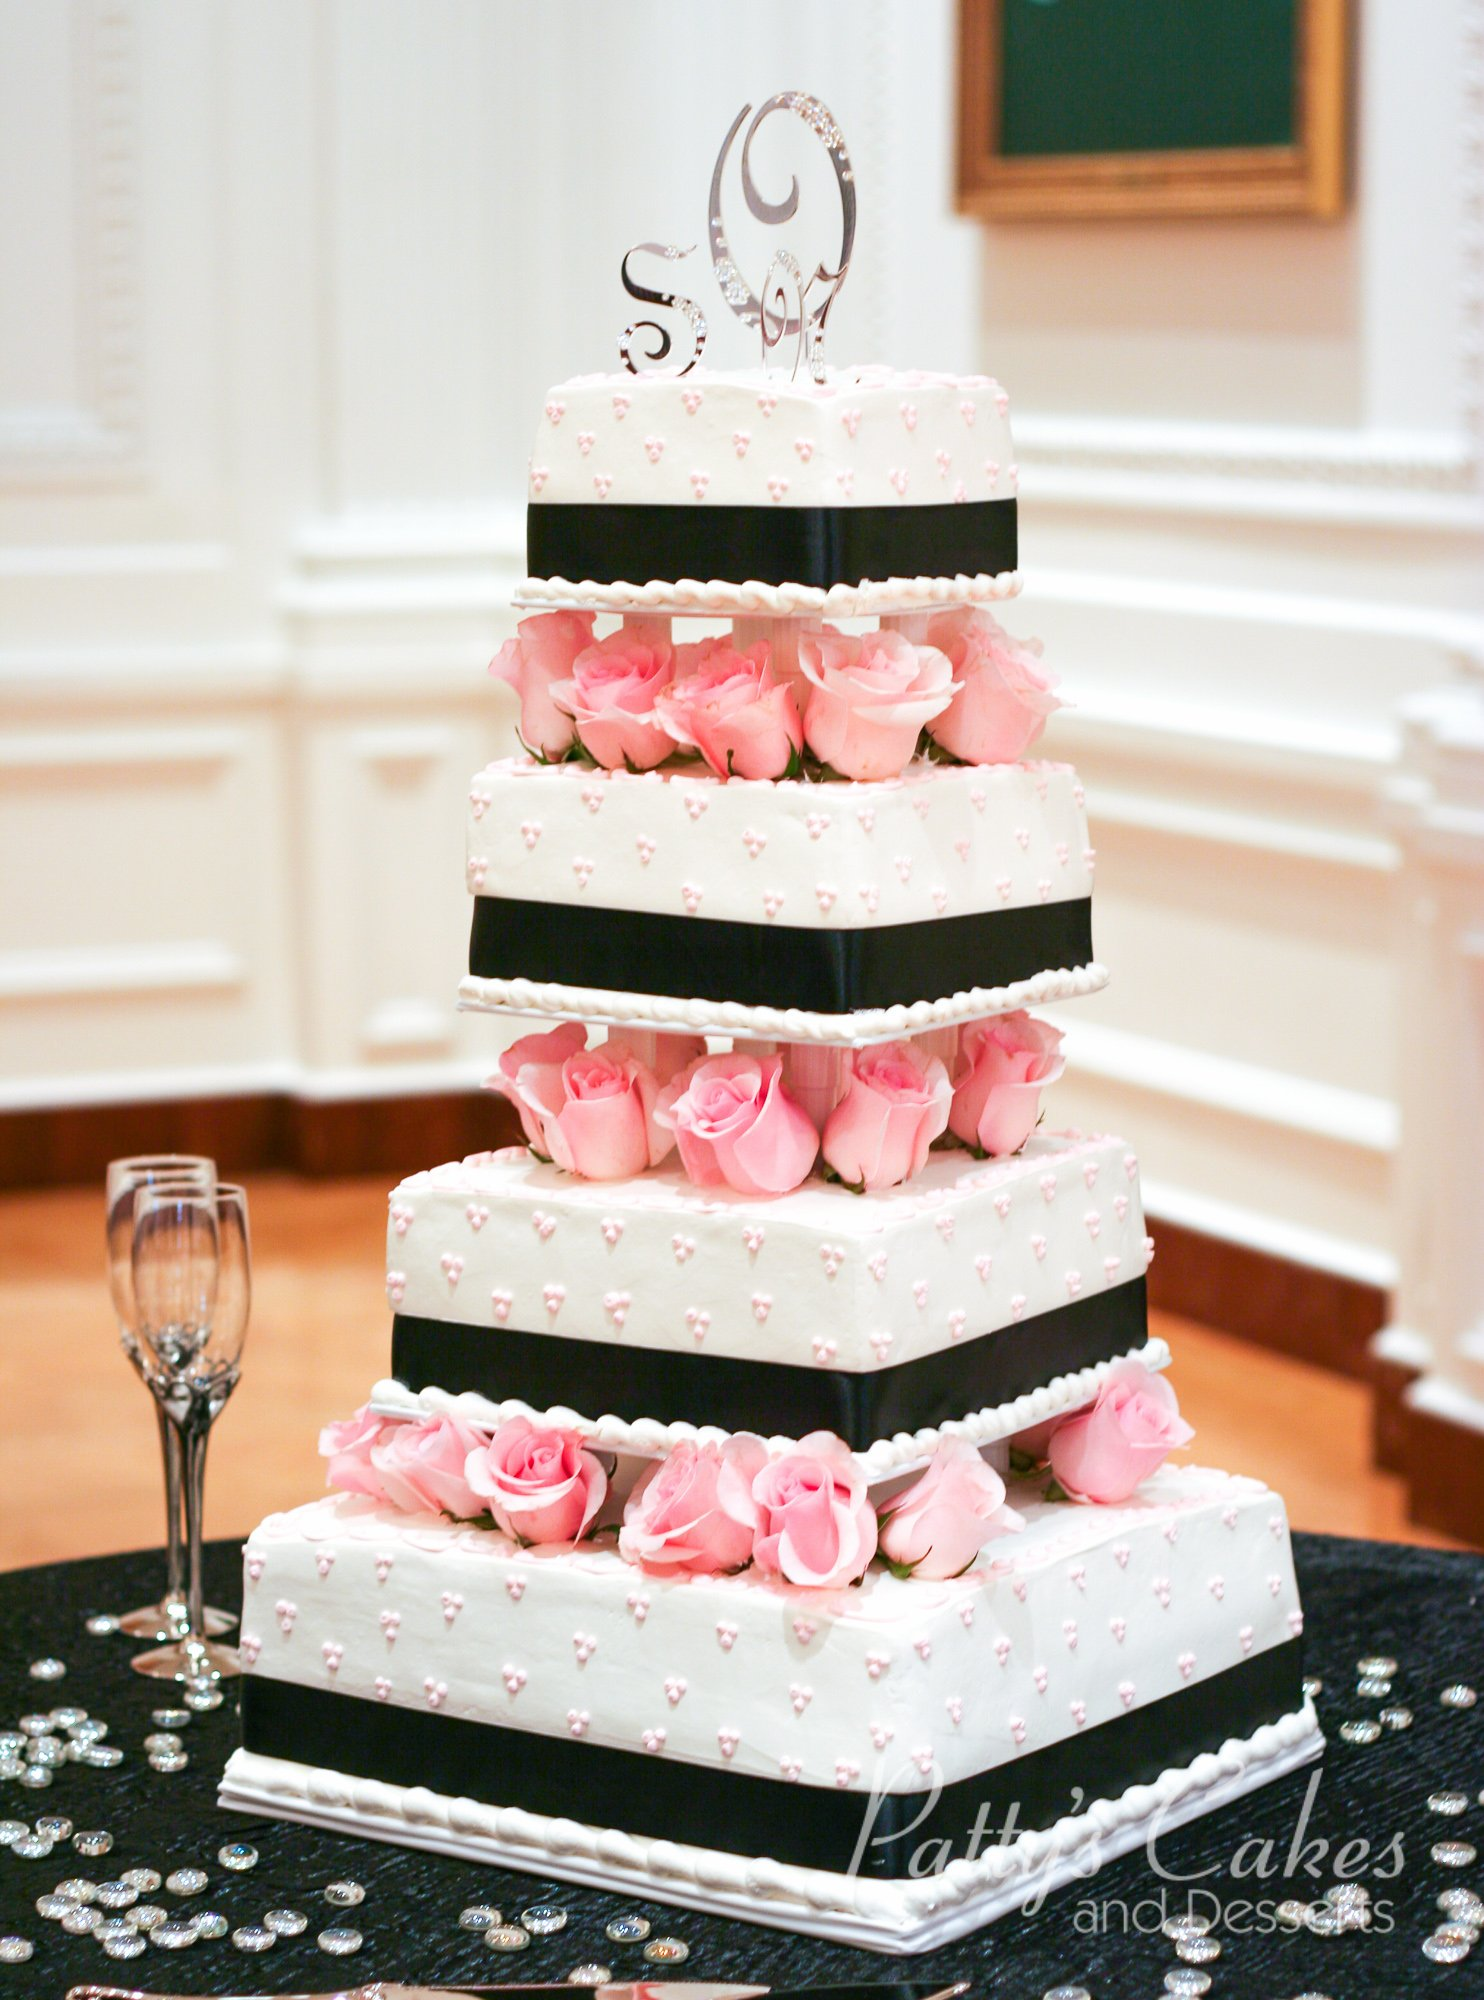 Photo of a off white wedding cake - Pattys Cakes and Desserts